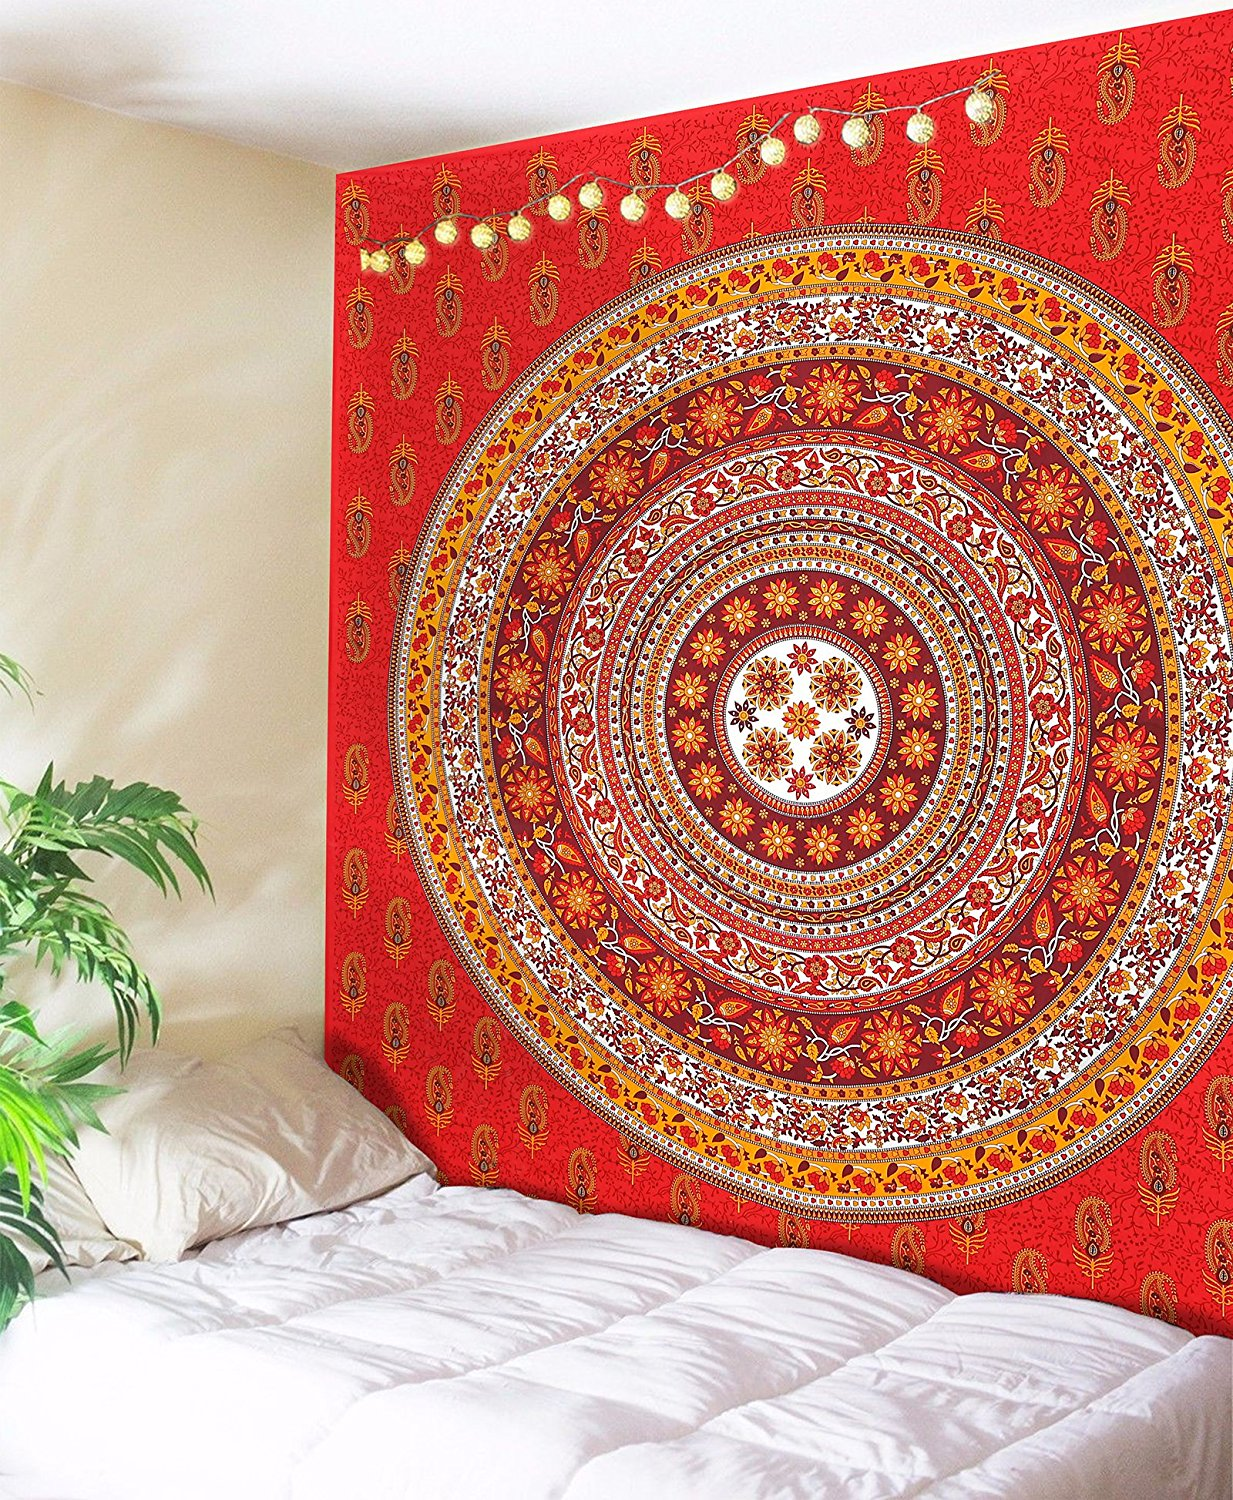 SheetKart Tapestry Wall Hanging Traditional Mandala Ethnic Tapestries Hippie Bohemian Indian Wall Decor College Dorm Beach Throw Psychedelic Red Large Wall Hangings